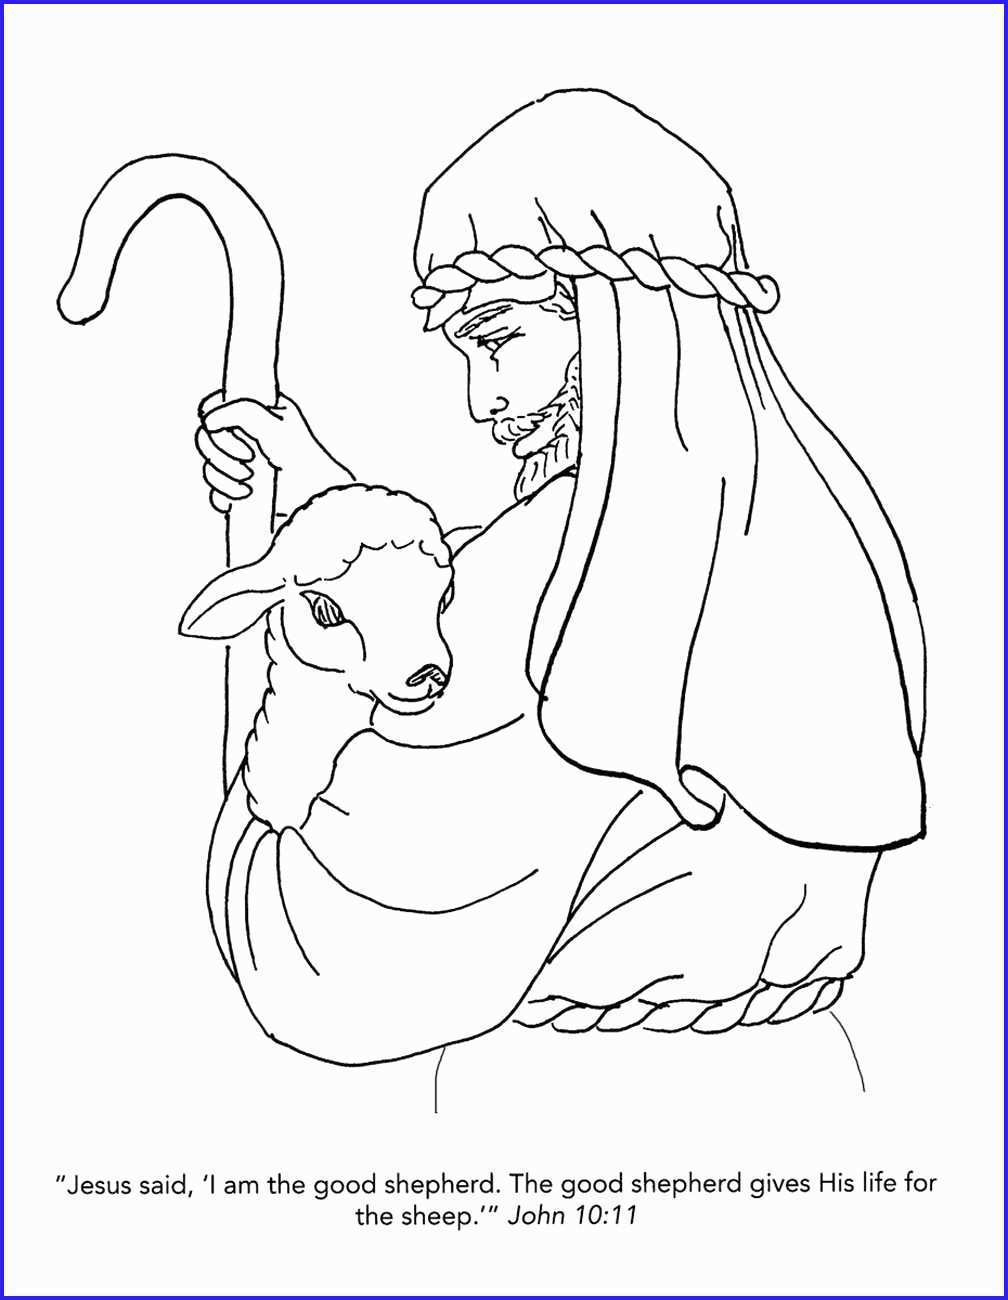 The Good Shepherd Coloring Page Good Shepherd Coloring Pages Free New I Am The Good Shepherd